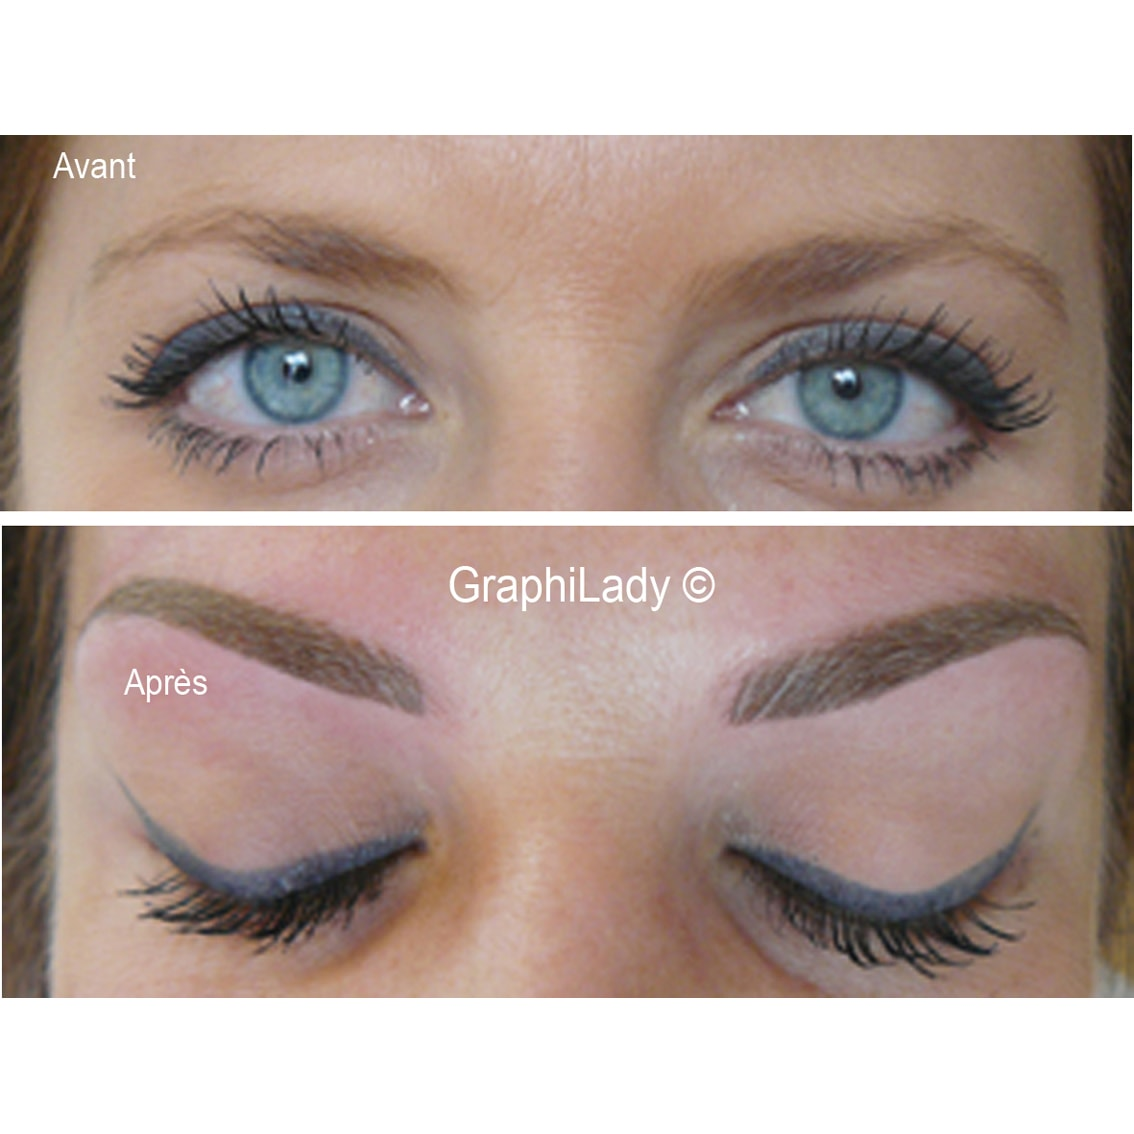 maquillage permanent sourcils 02 graphilady